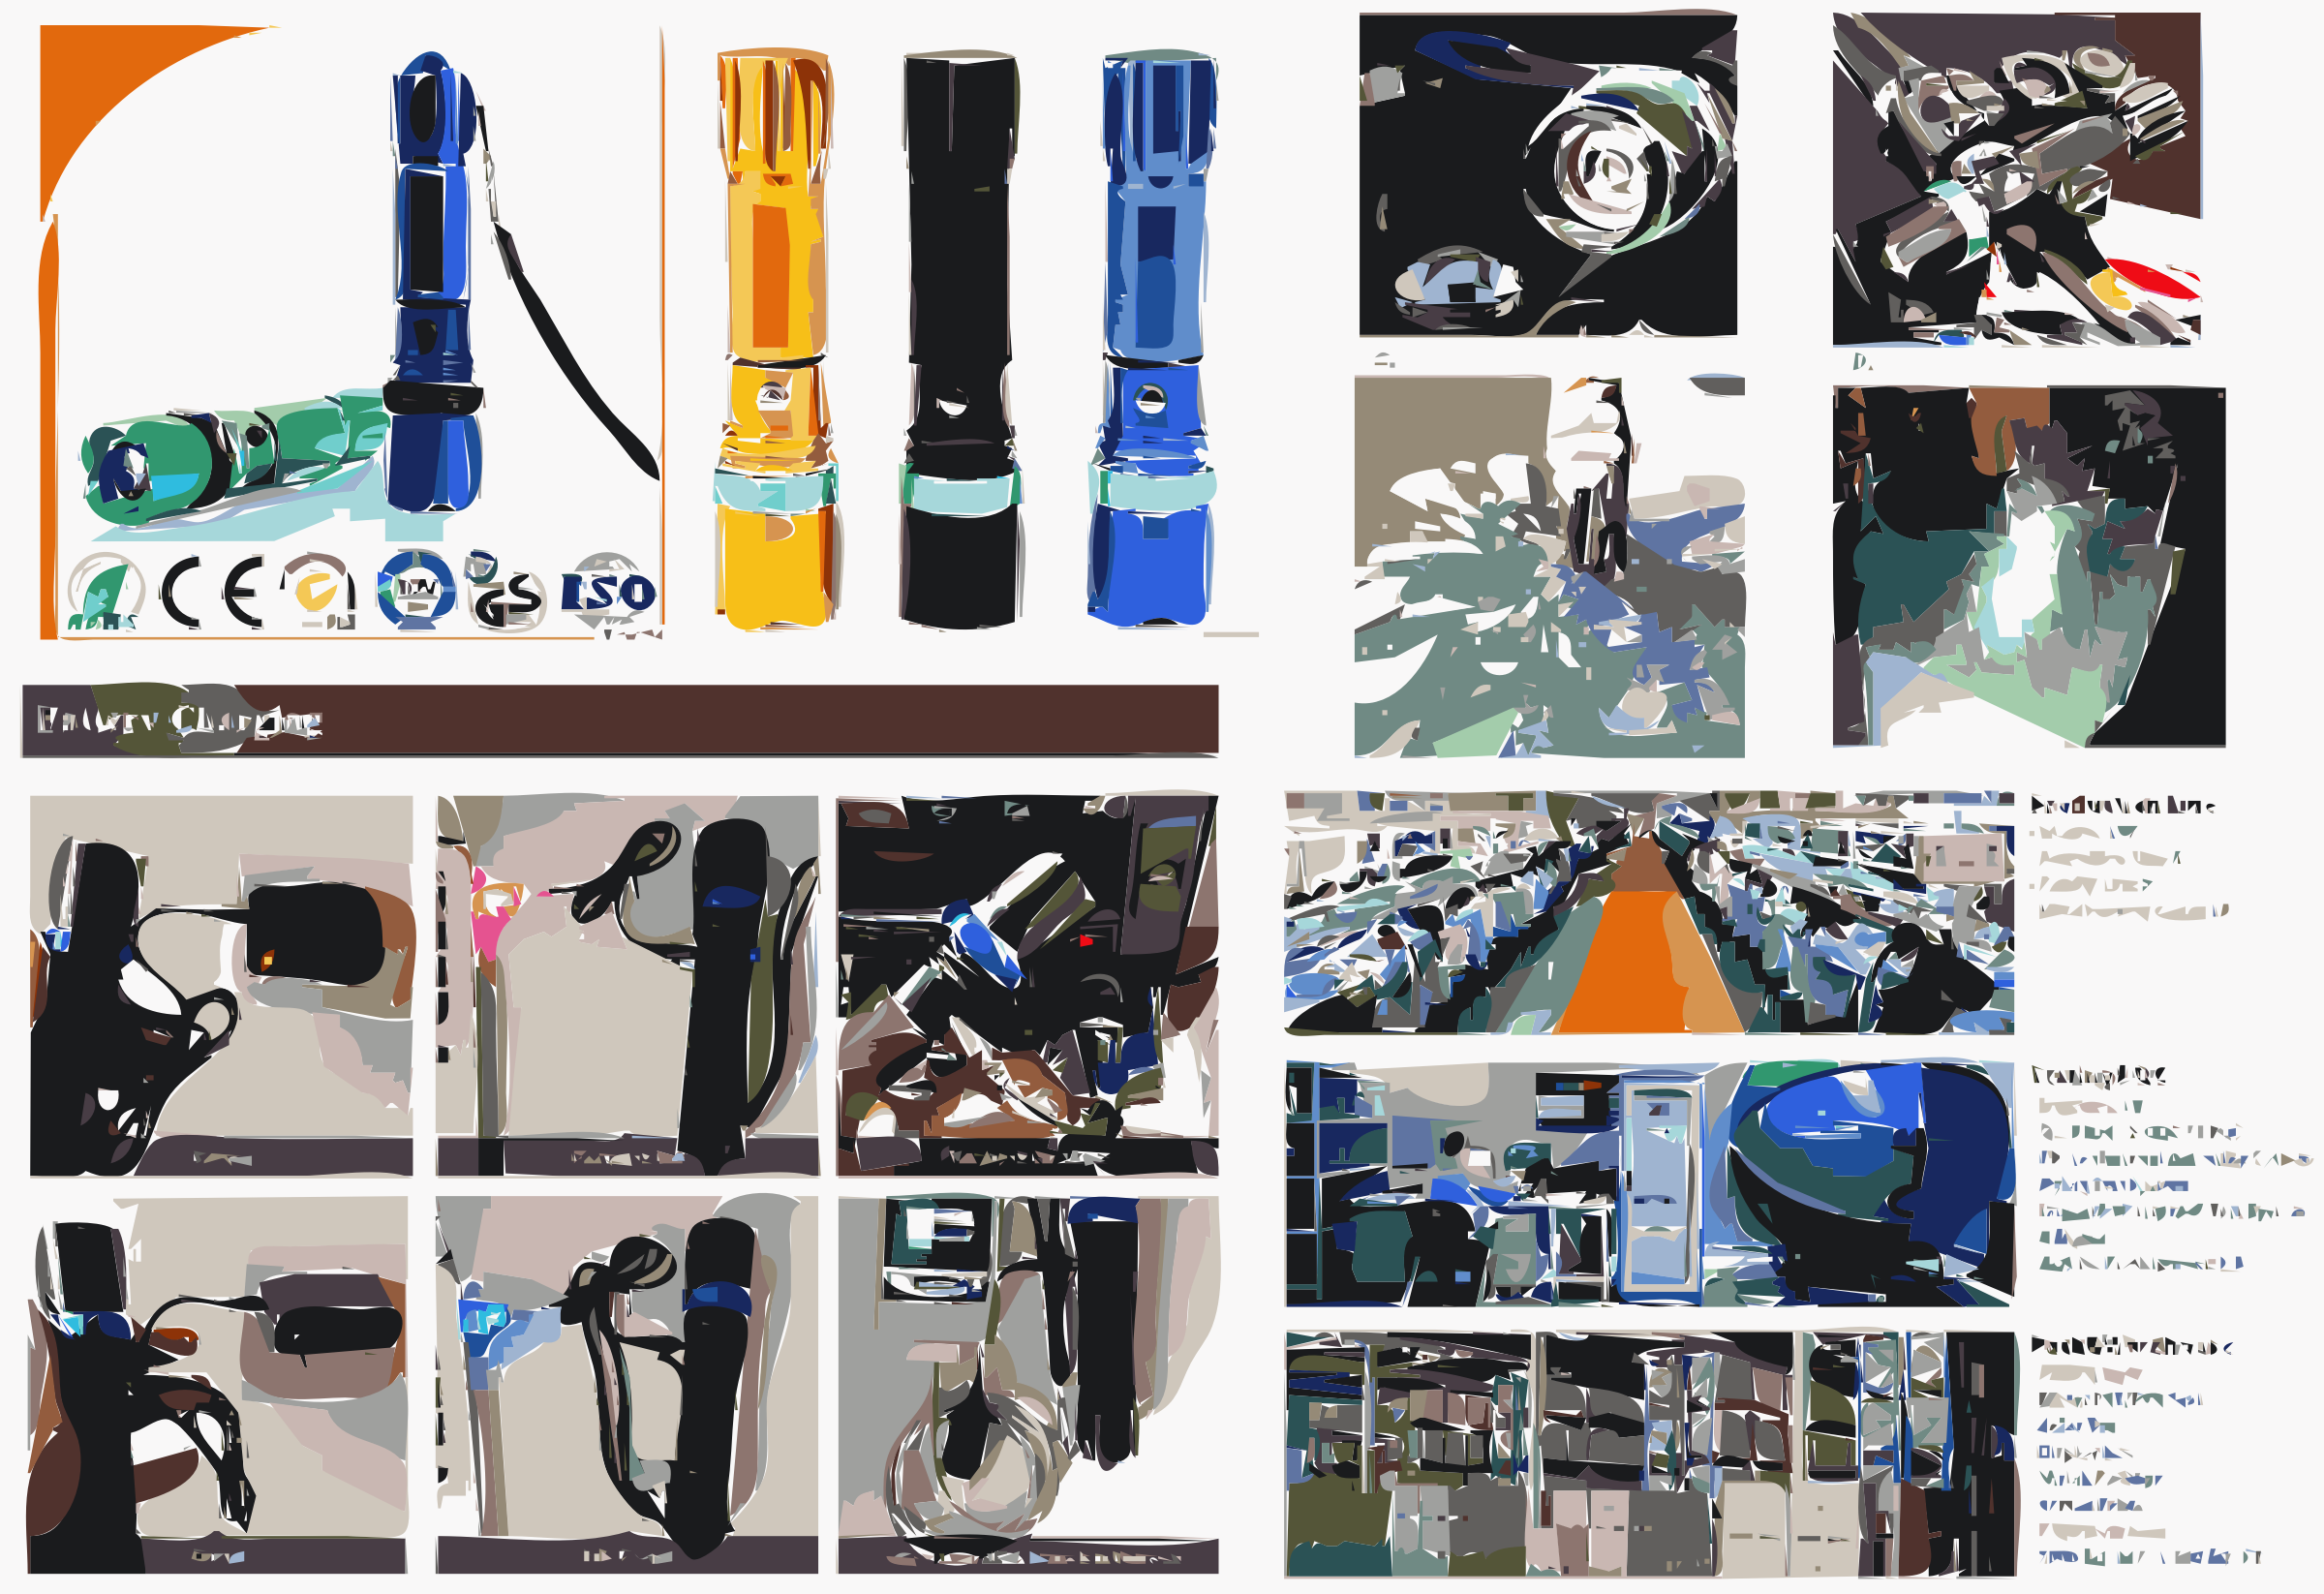 Latest High quality Metal Aluminum Material Led Flashlight by denglanbeiyi369